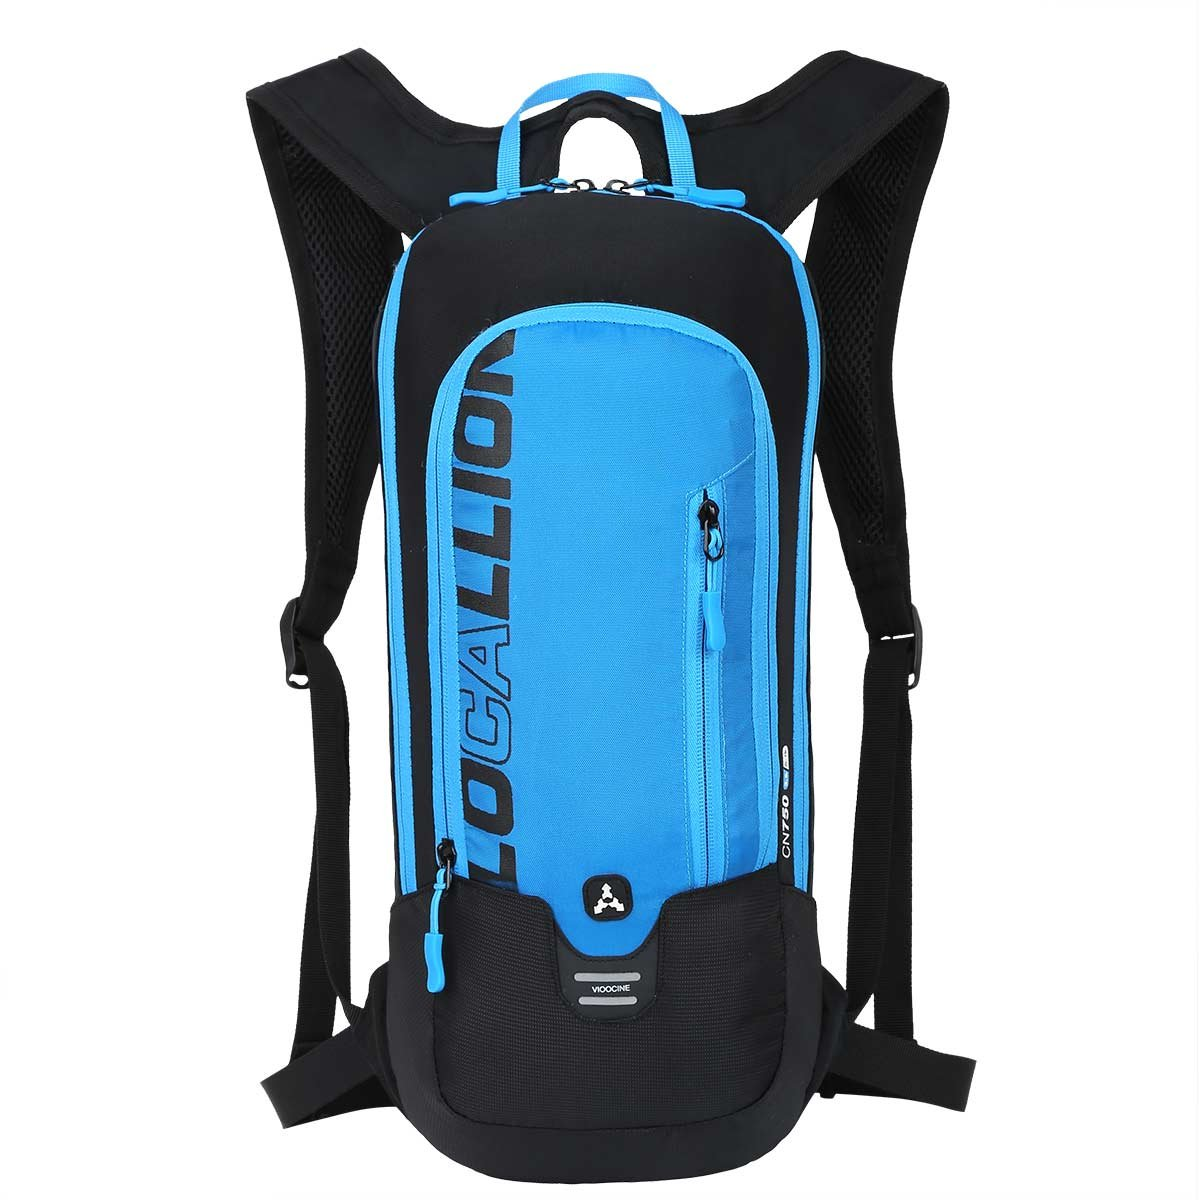 Local Lion 10L Mini Hydration Pack - Max. Komfort, Ultraleicht, Perfekte Passform Begleiter für Trinkblase bis 2L (Nicht enthalten) - Ideale Lösung für Laufen | Radsport | Camping  Ultraleicht